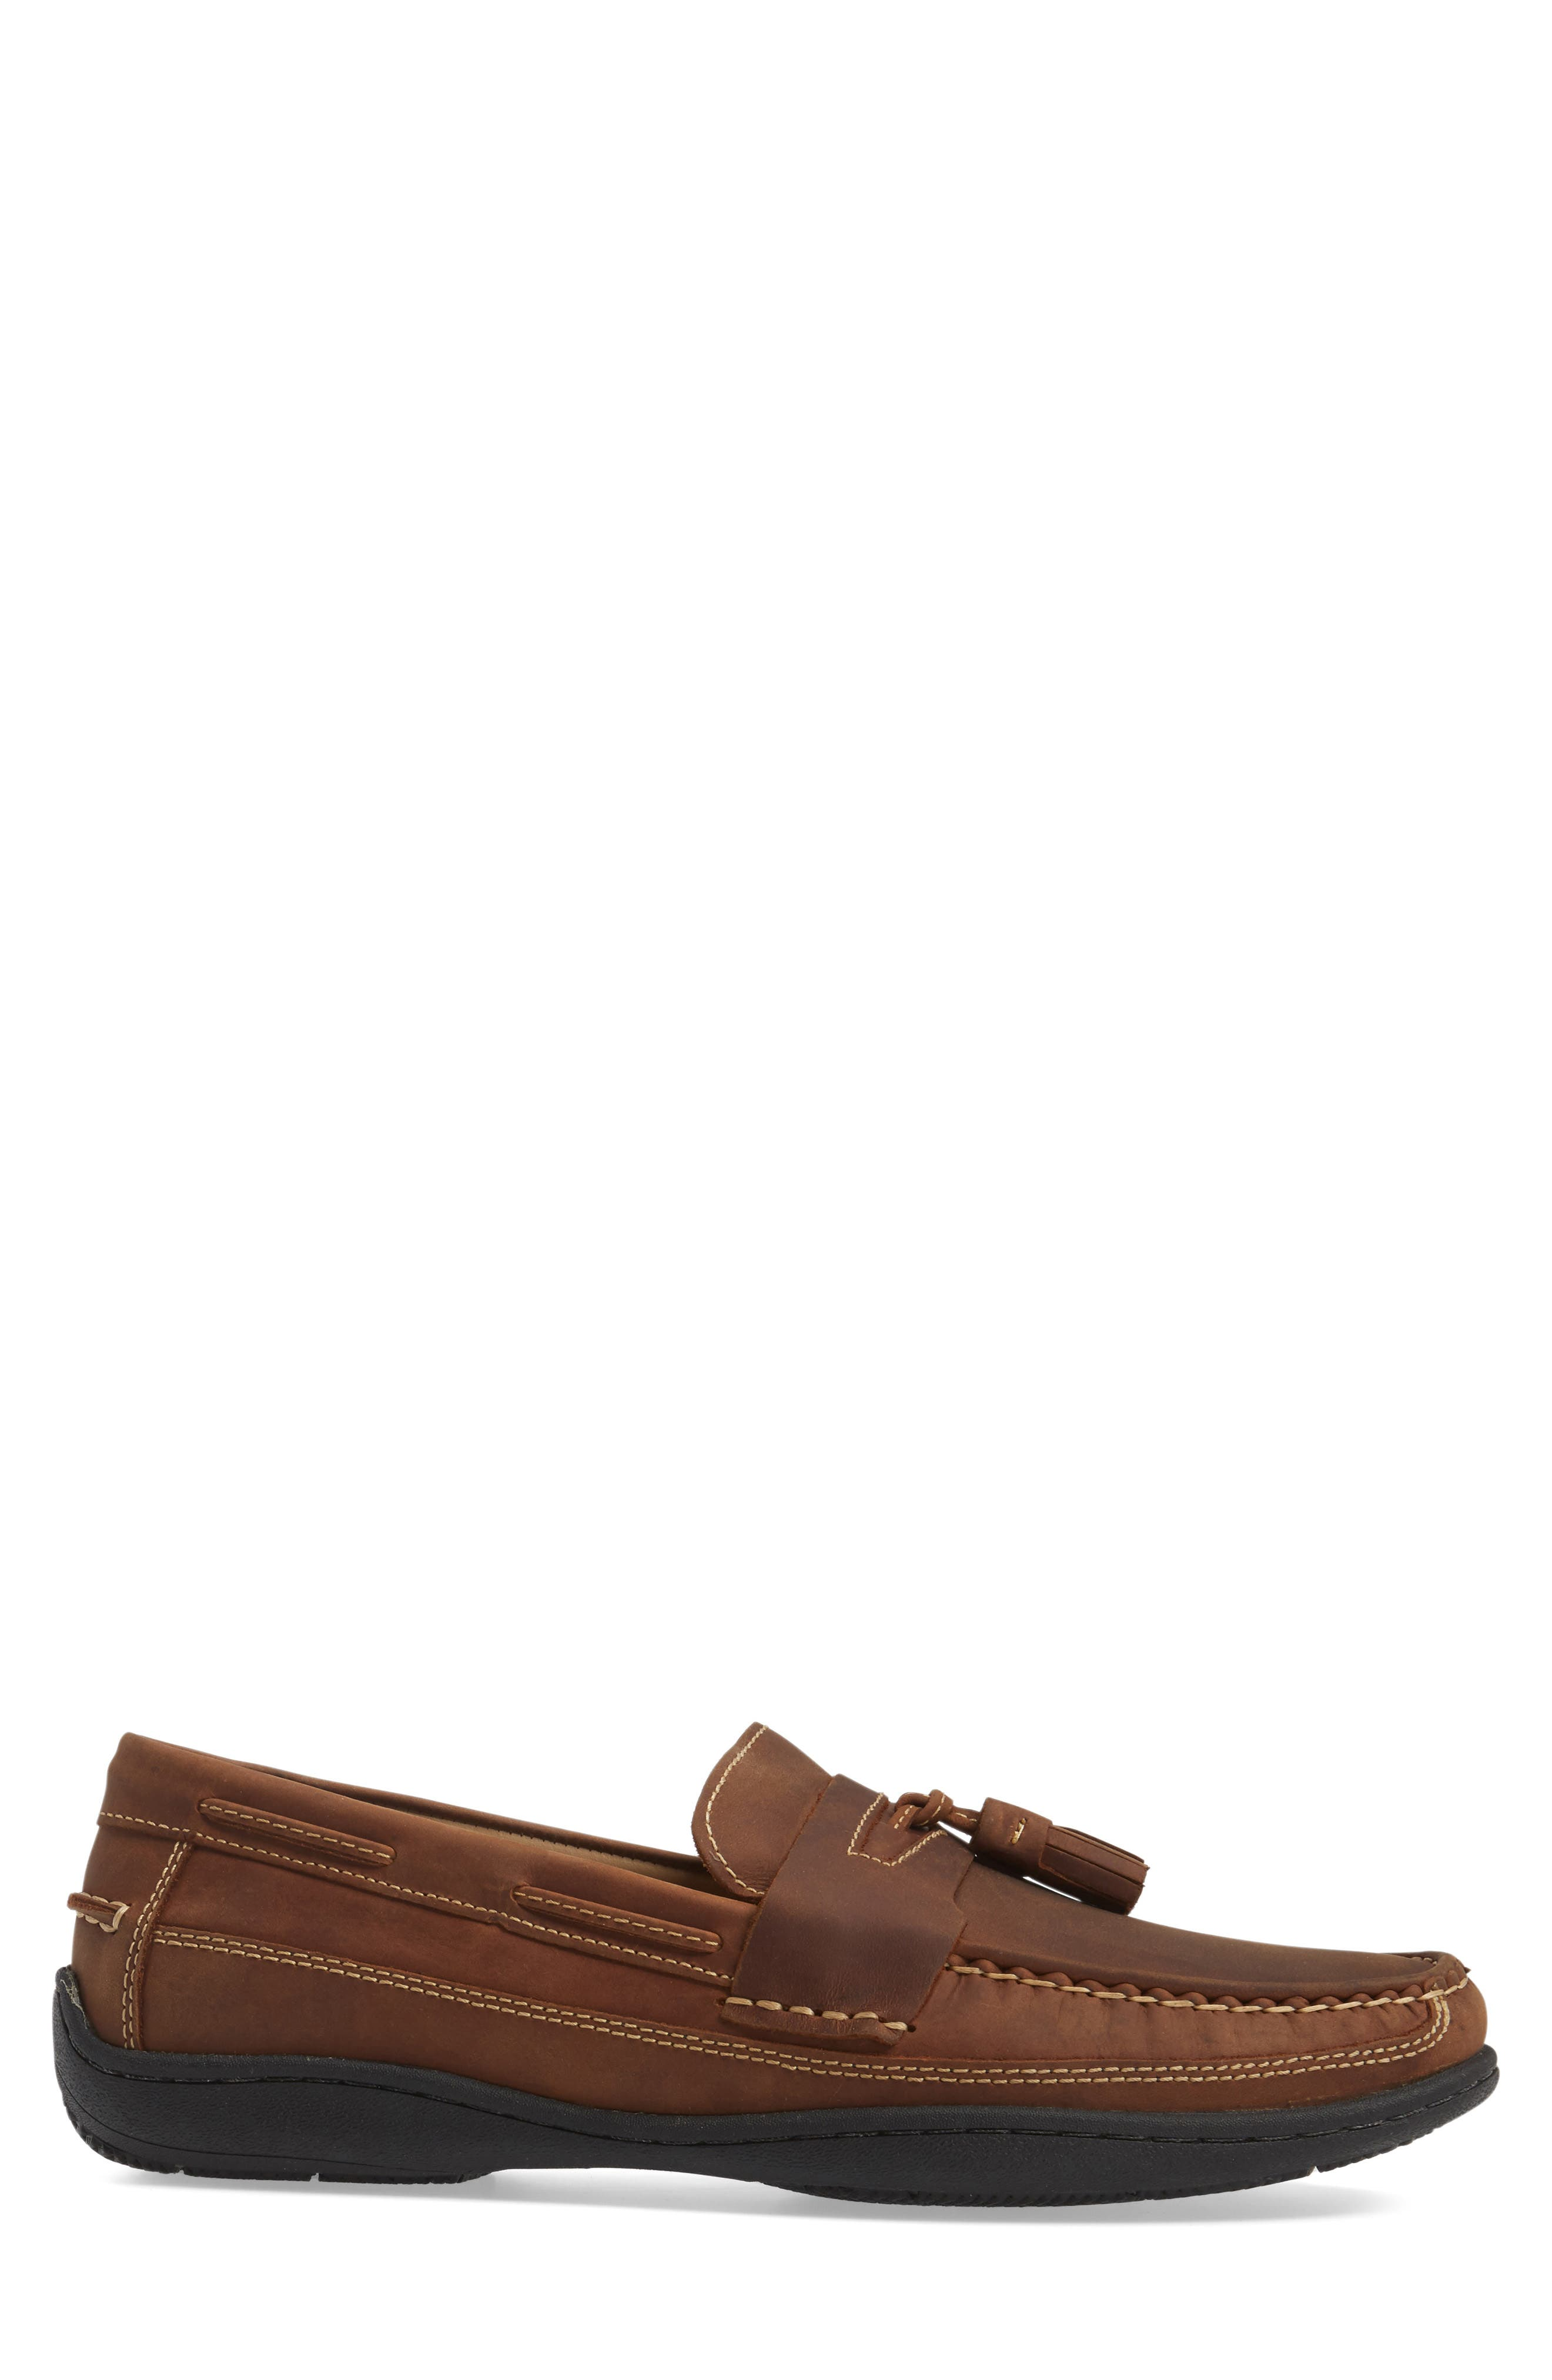 Fowler Tasseled Loafer,                             Alternate thumbnail 3, color,                             Tan Leather